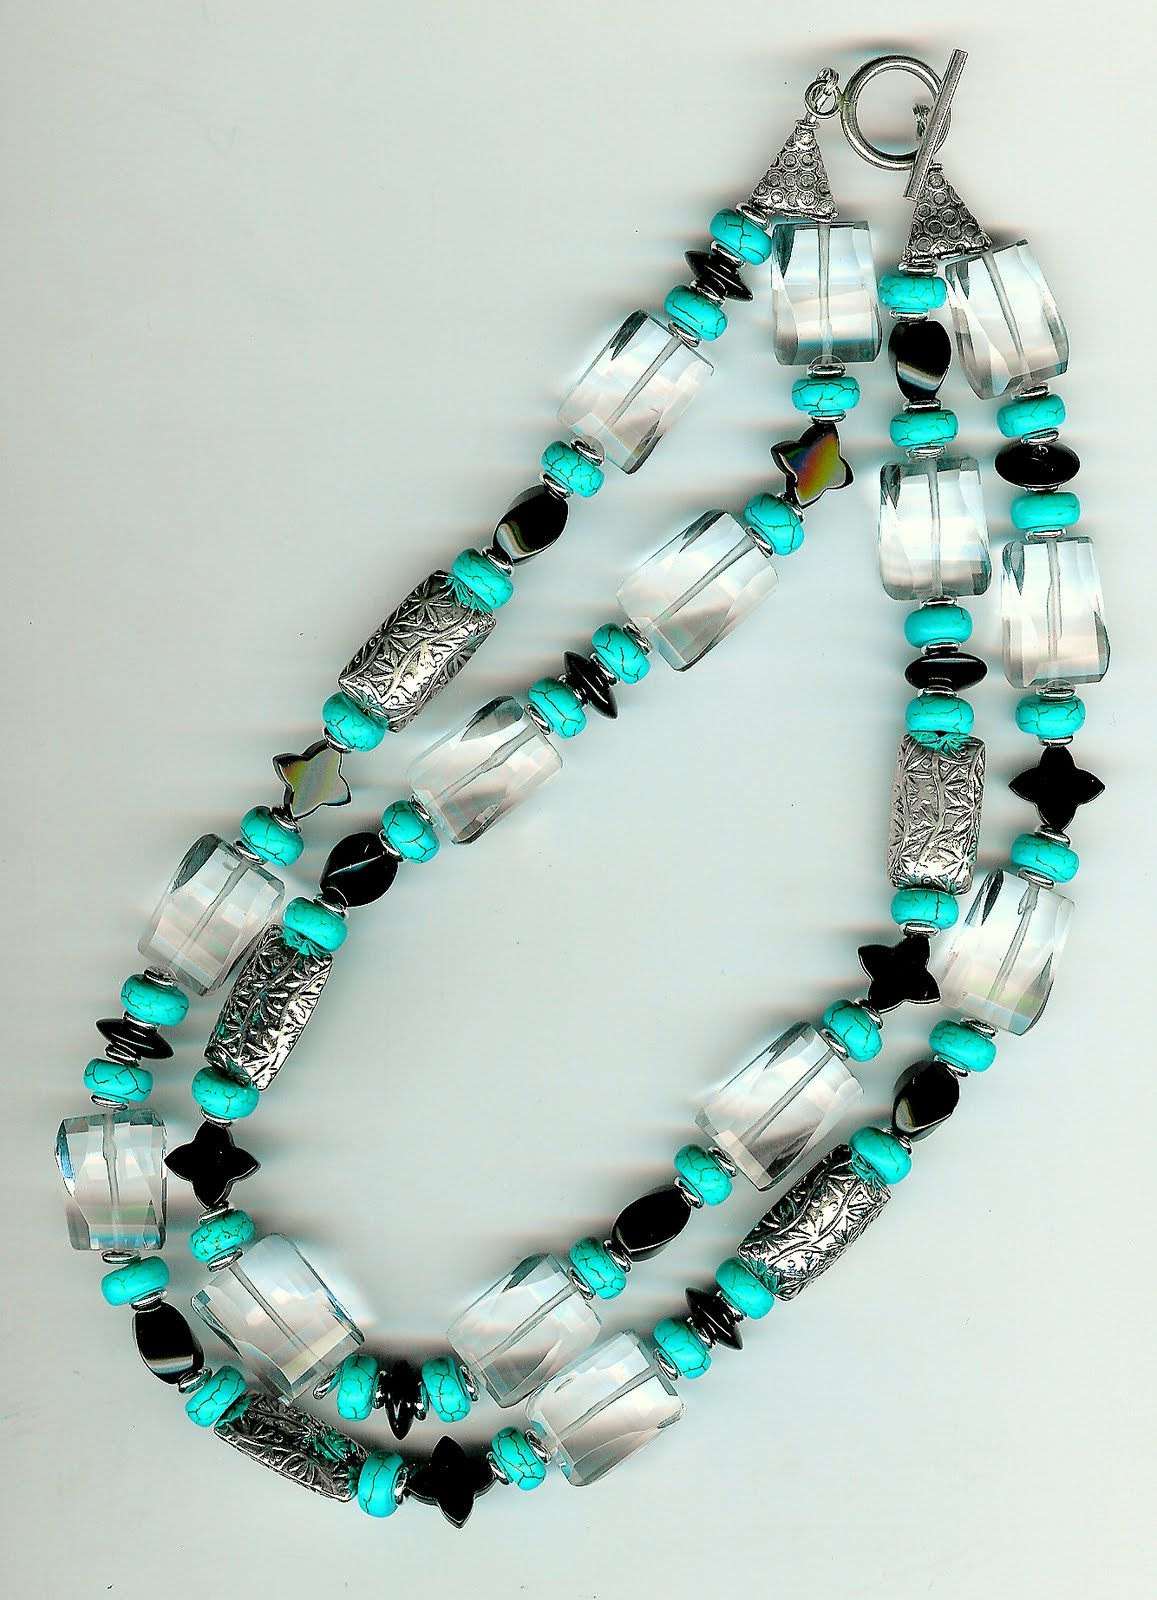 135. Clear Fluorite, Carved Onyx, Turquoise with Bali Sterling Silver